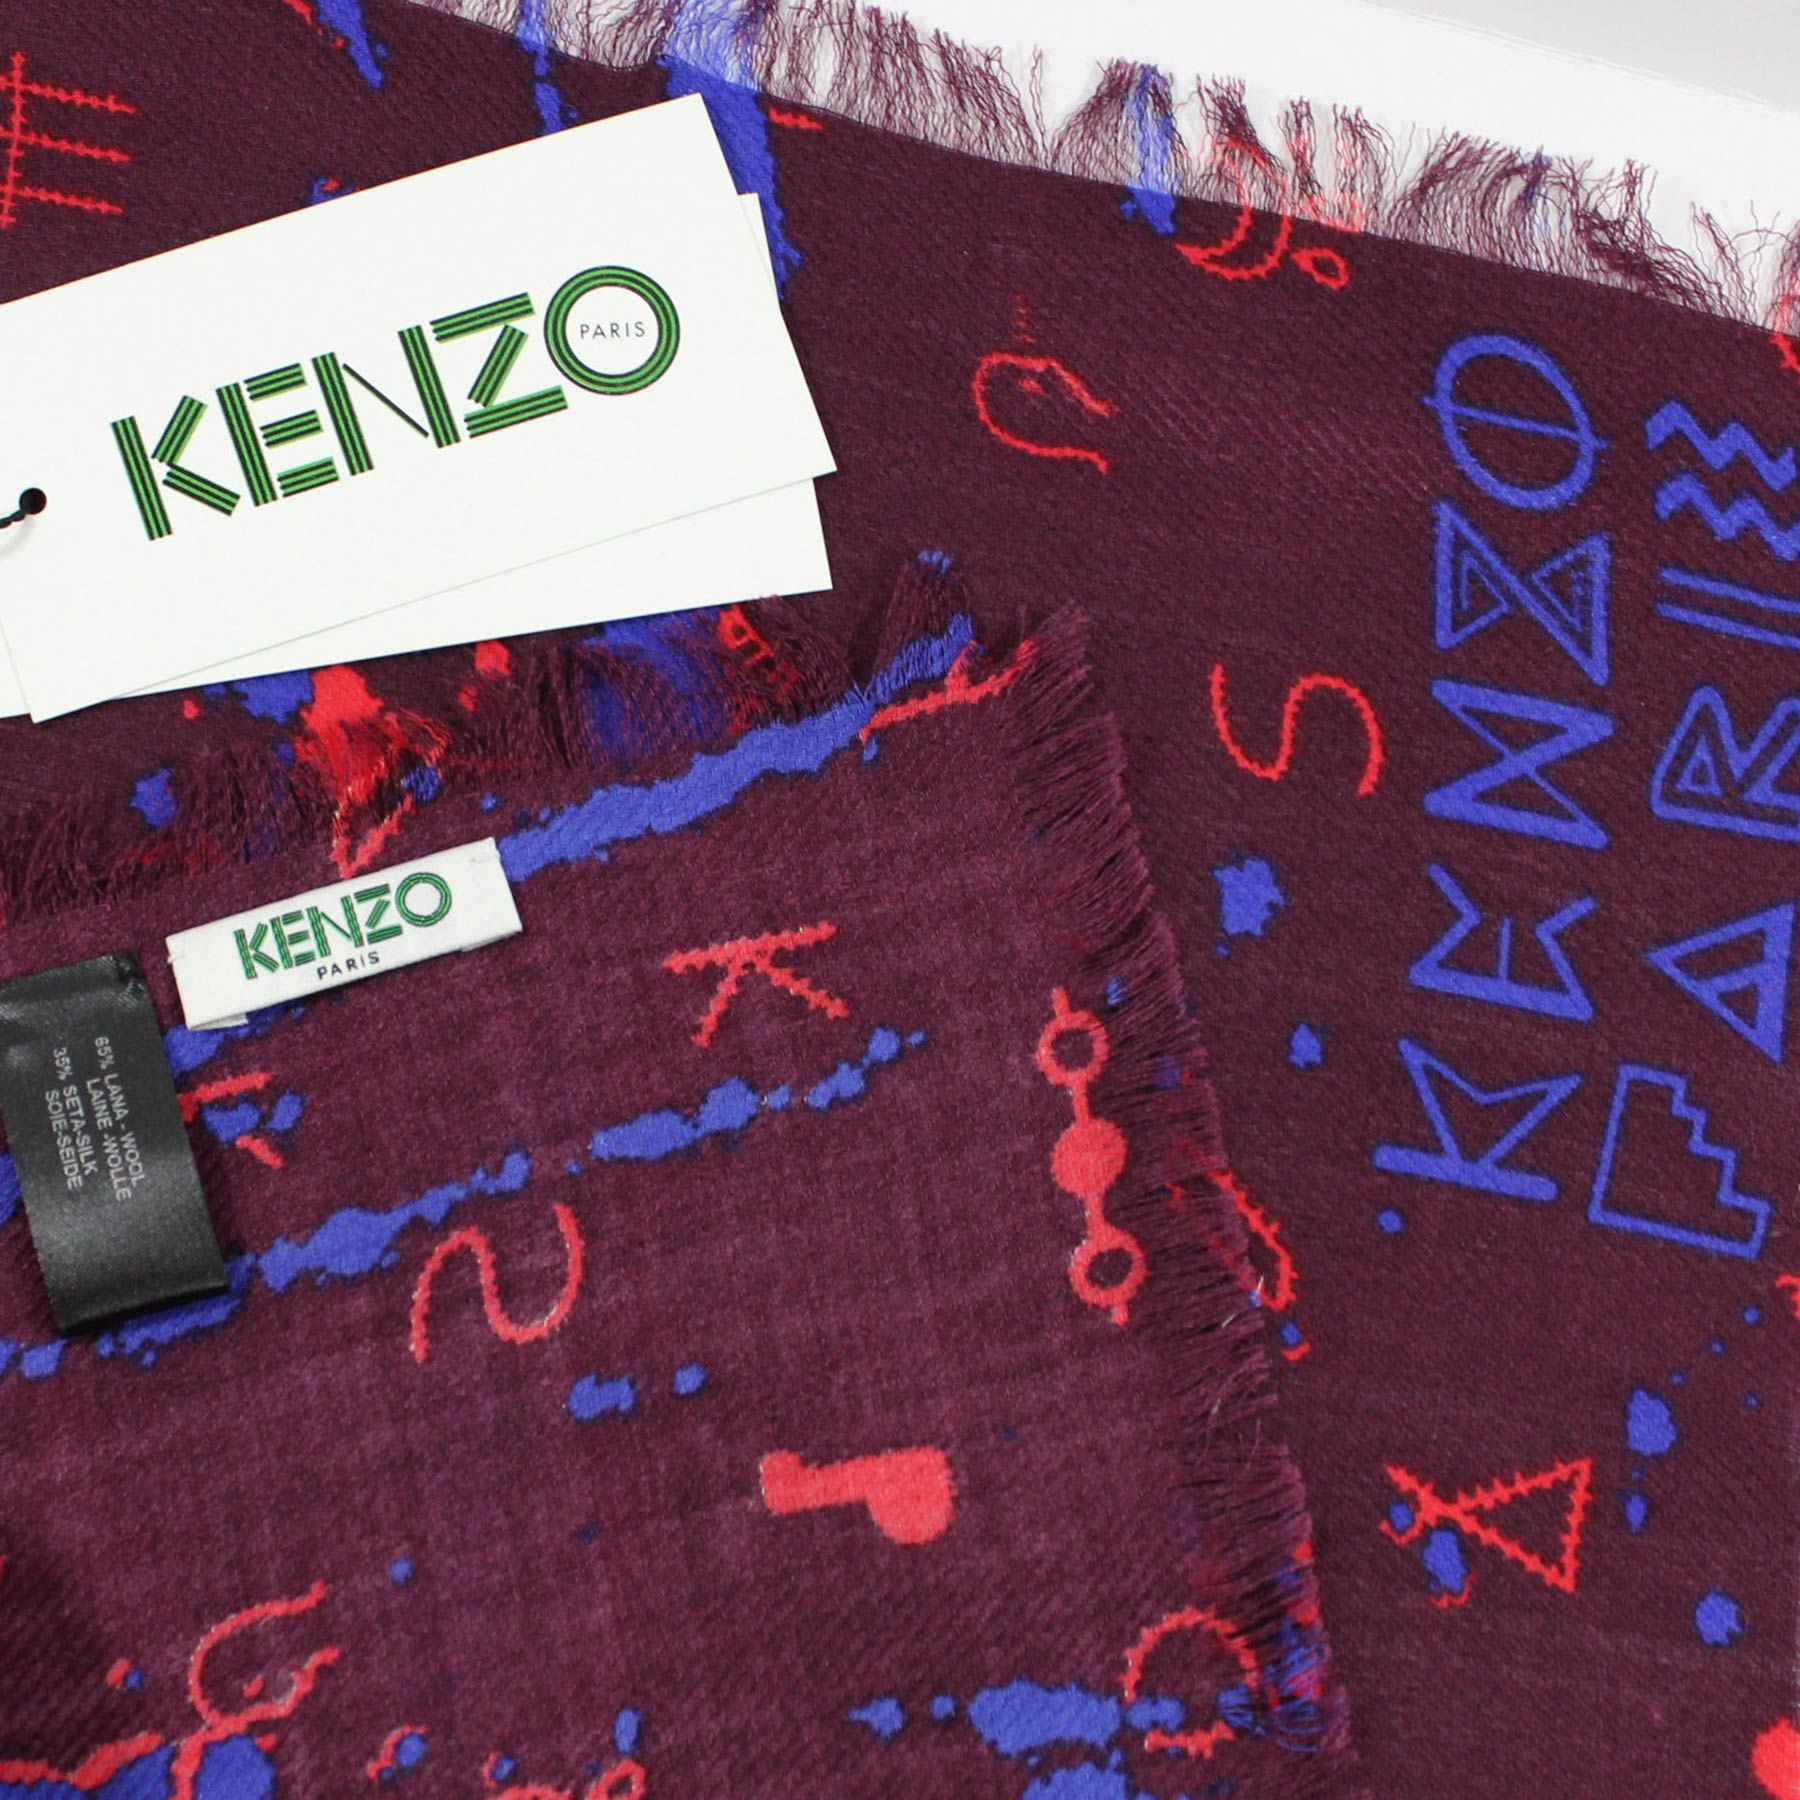 Kenzo Scarf Royal Blue Maroon Red - Silk Square Scarf FINAL SALE